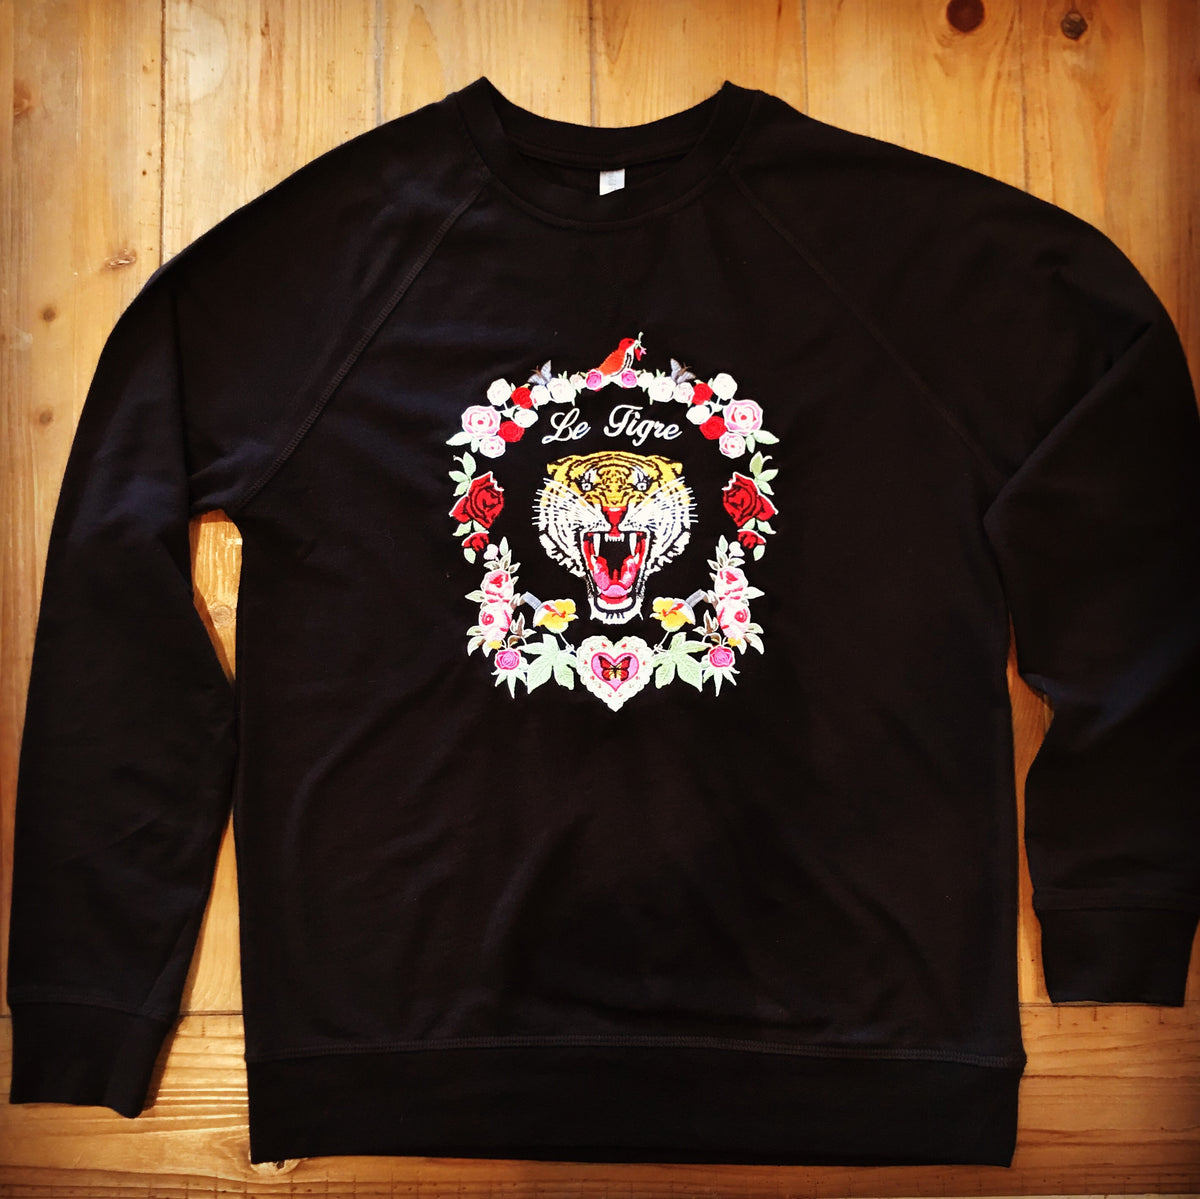 Le Tiger Sweatshirt Black French Terry unisex fit